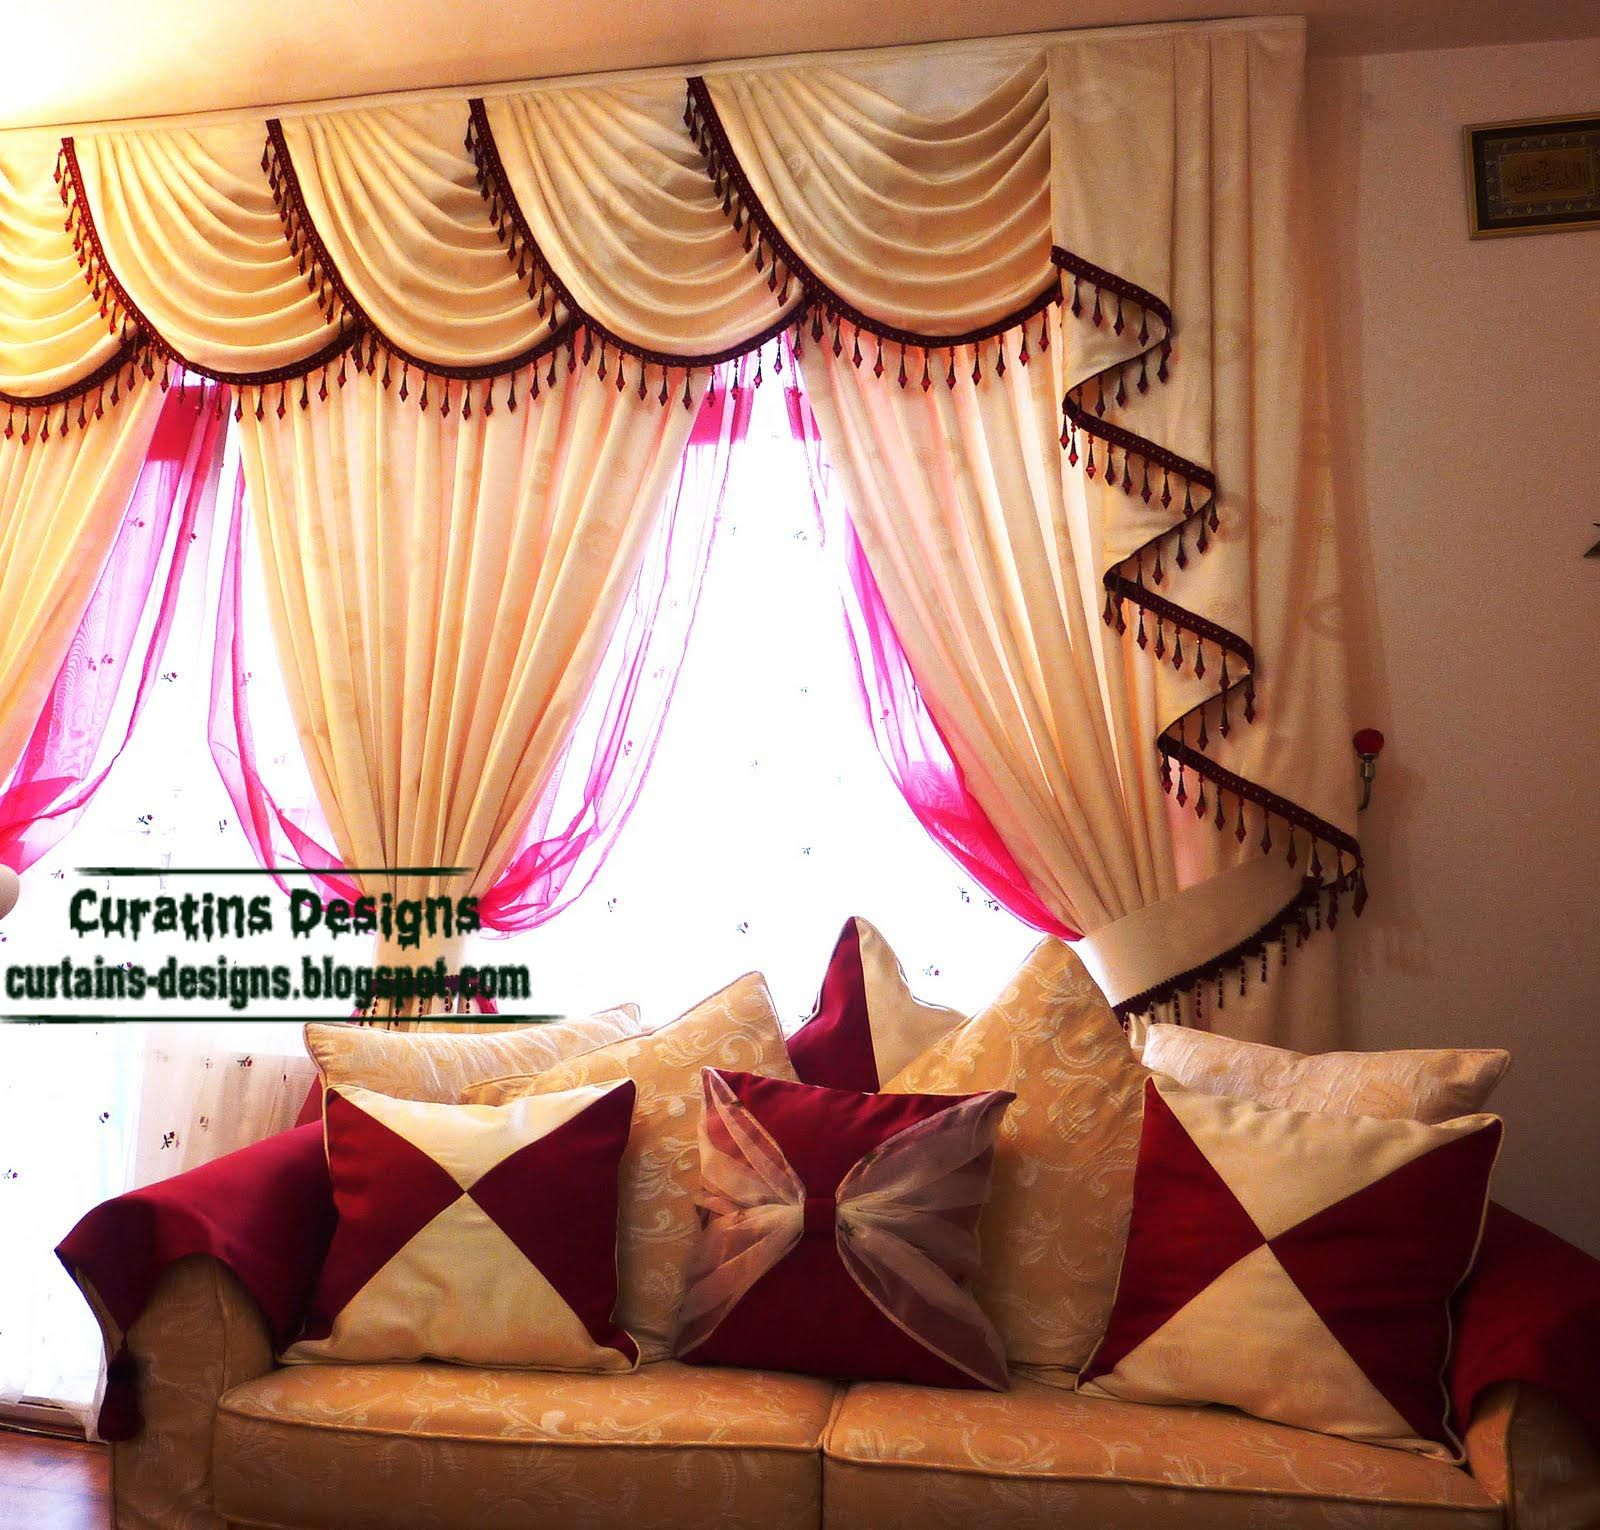 The living room curtains and valances digital imagery bottom, is ...